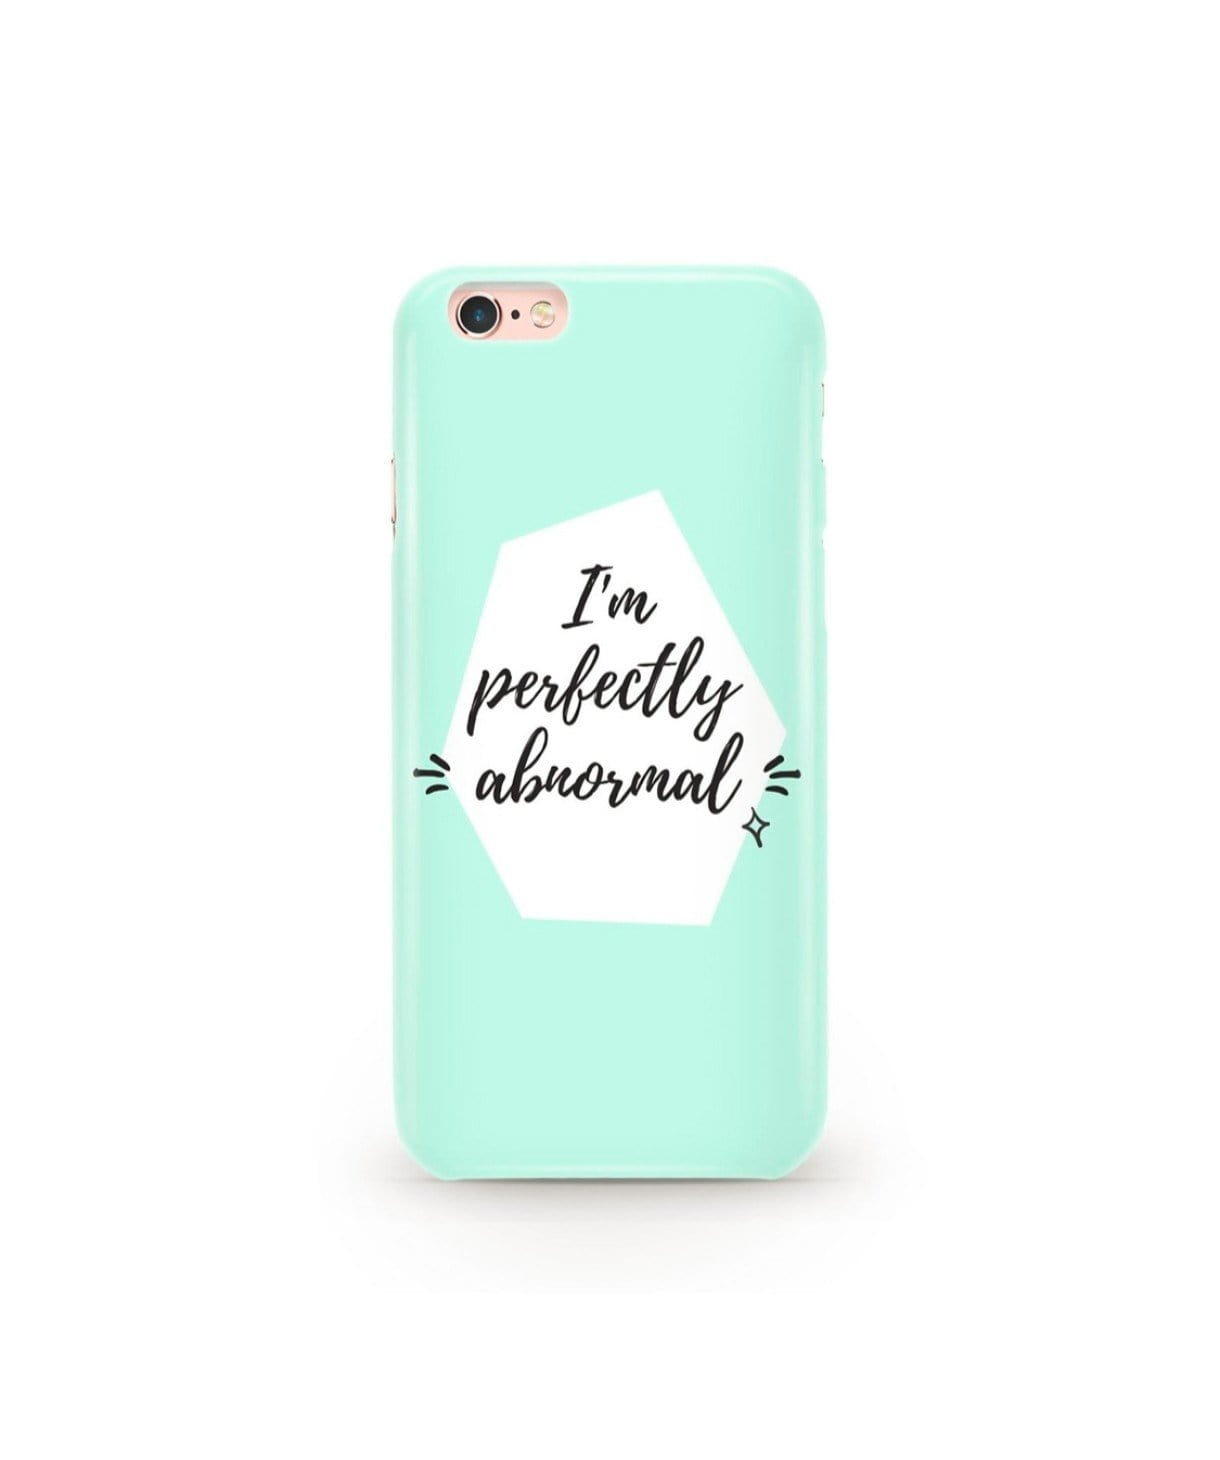 Being Abnormal IPhone Cover (Personalisation Available) - Uptownie